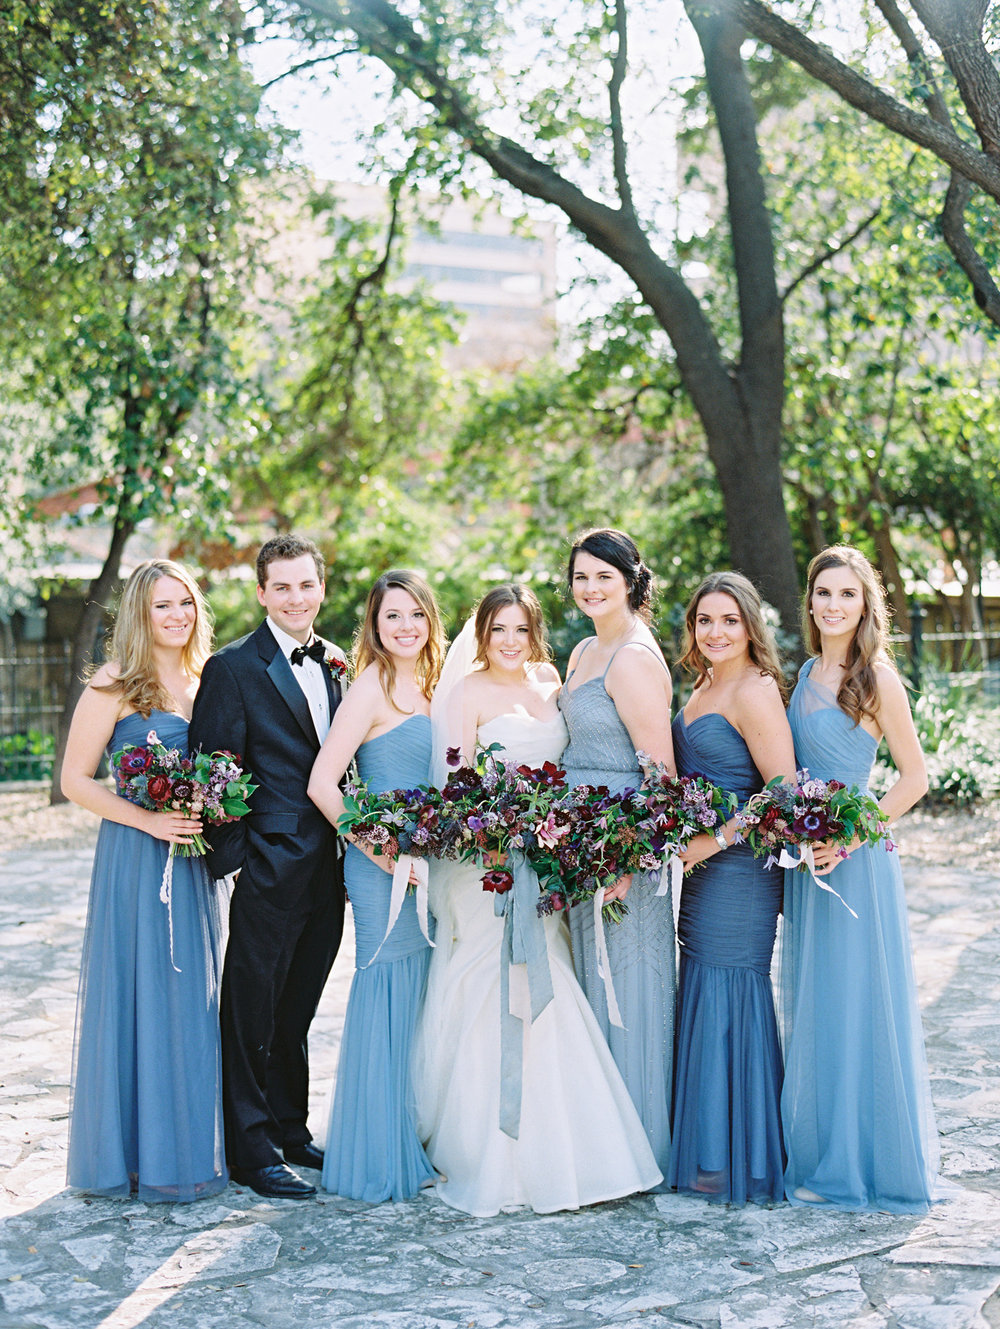 Dusty blues and light ceruleans: perfect palette for a bridal party | The Wildflowers featured on Martha Stewart Weddings | Instagram: @ thewildflowers_com | www.thewildflowers.com